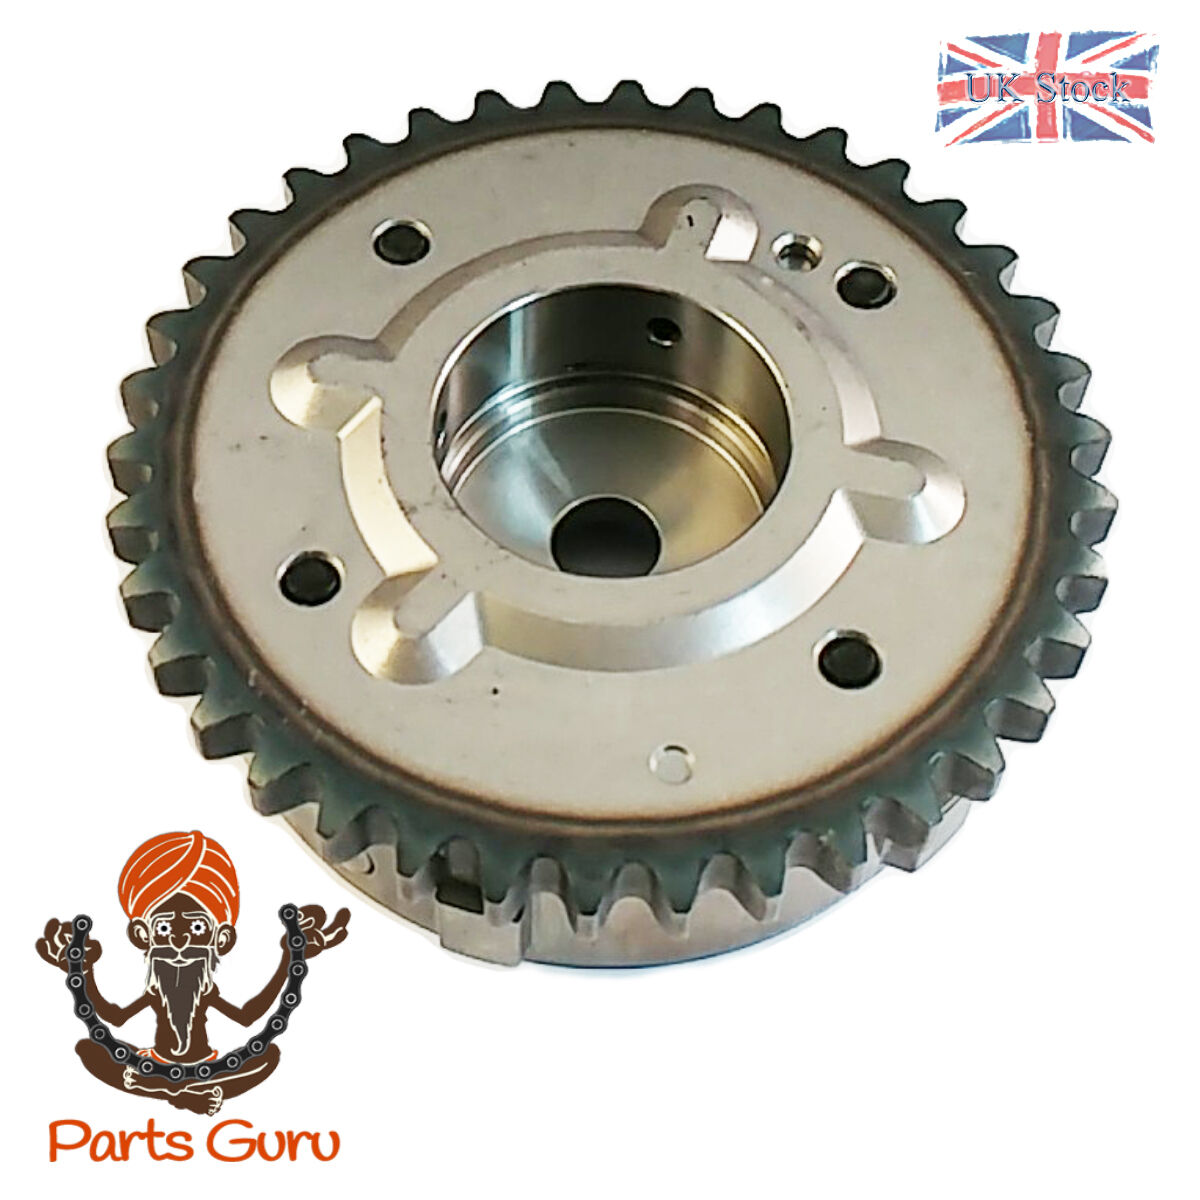 2010-2017 FORD MONDEO S-MAX 2.0 EcoBoost EXHAUST VVT GEAR PULLEY TPBA TPWA IVCT